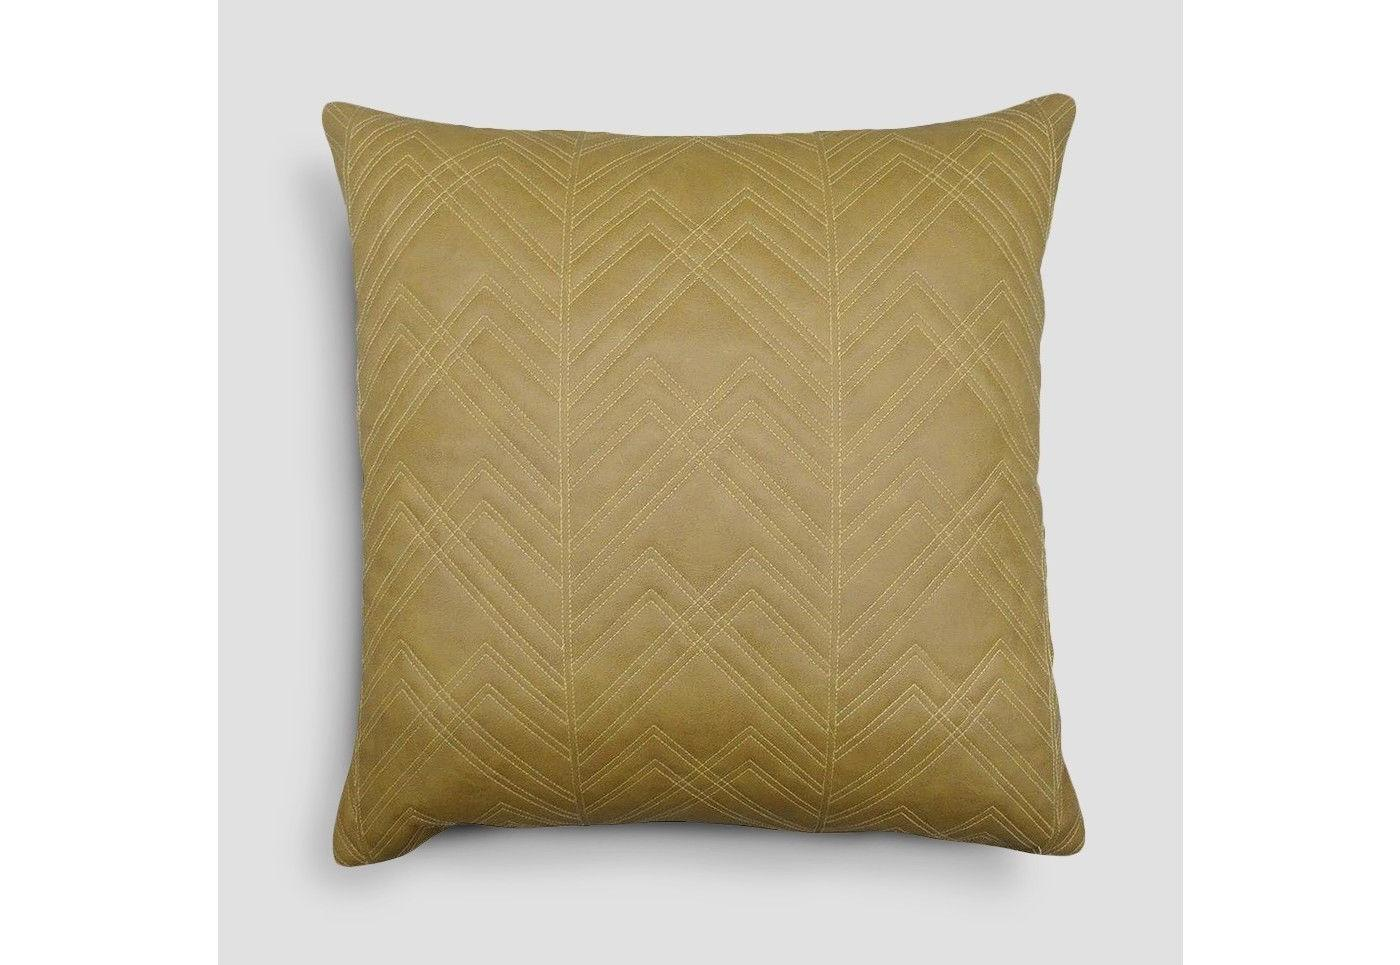 Threshold - Quilted Faux Leather Throw Pillow - Brown - 18""